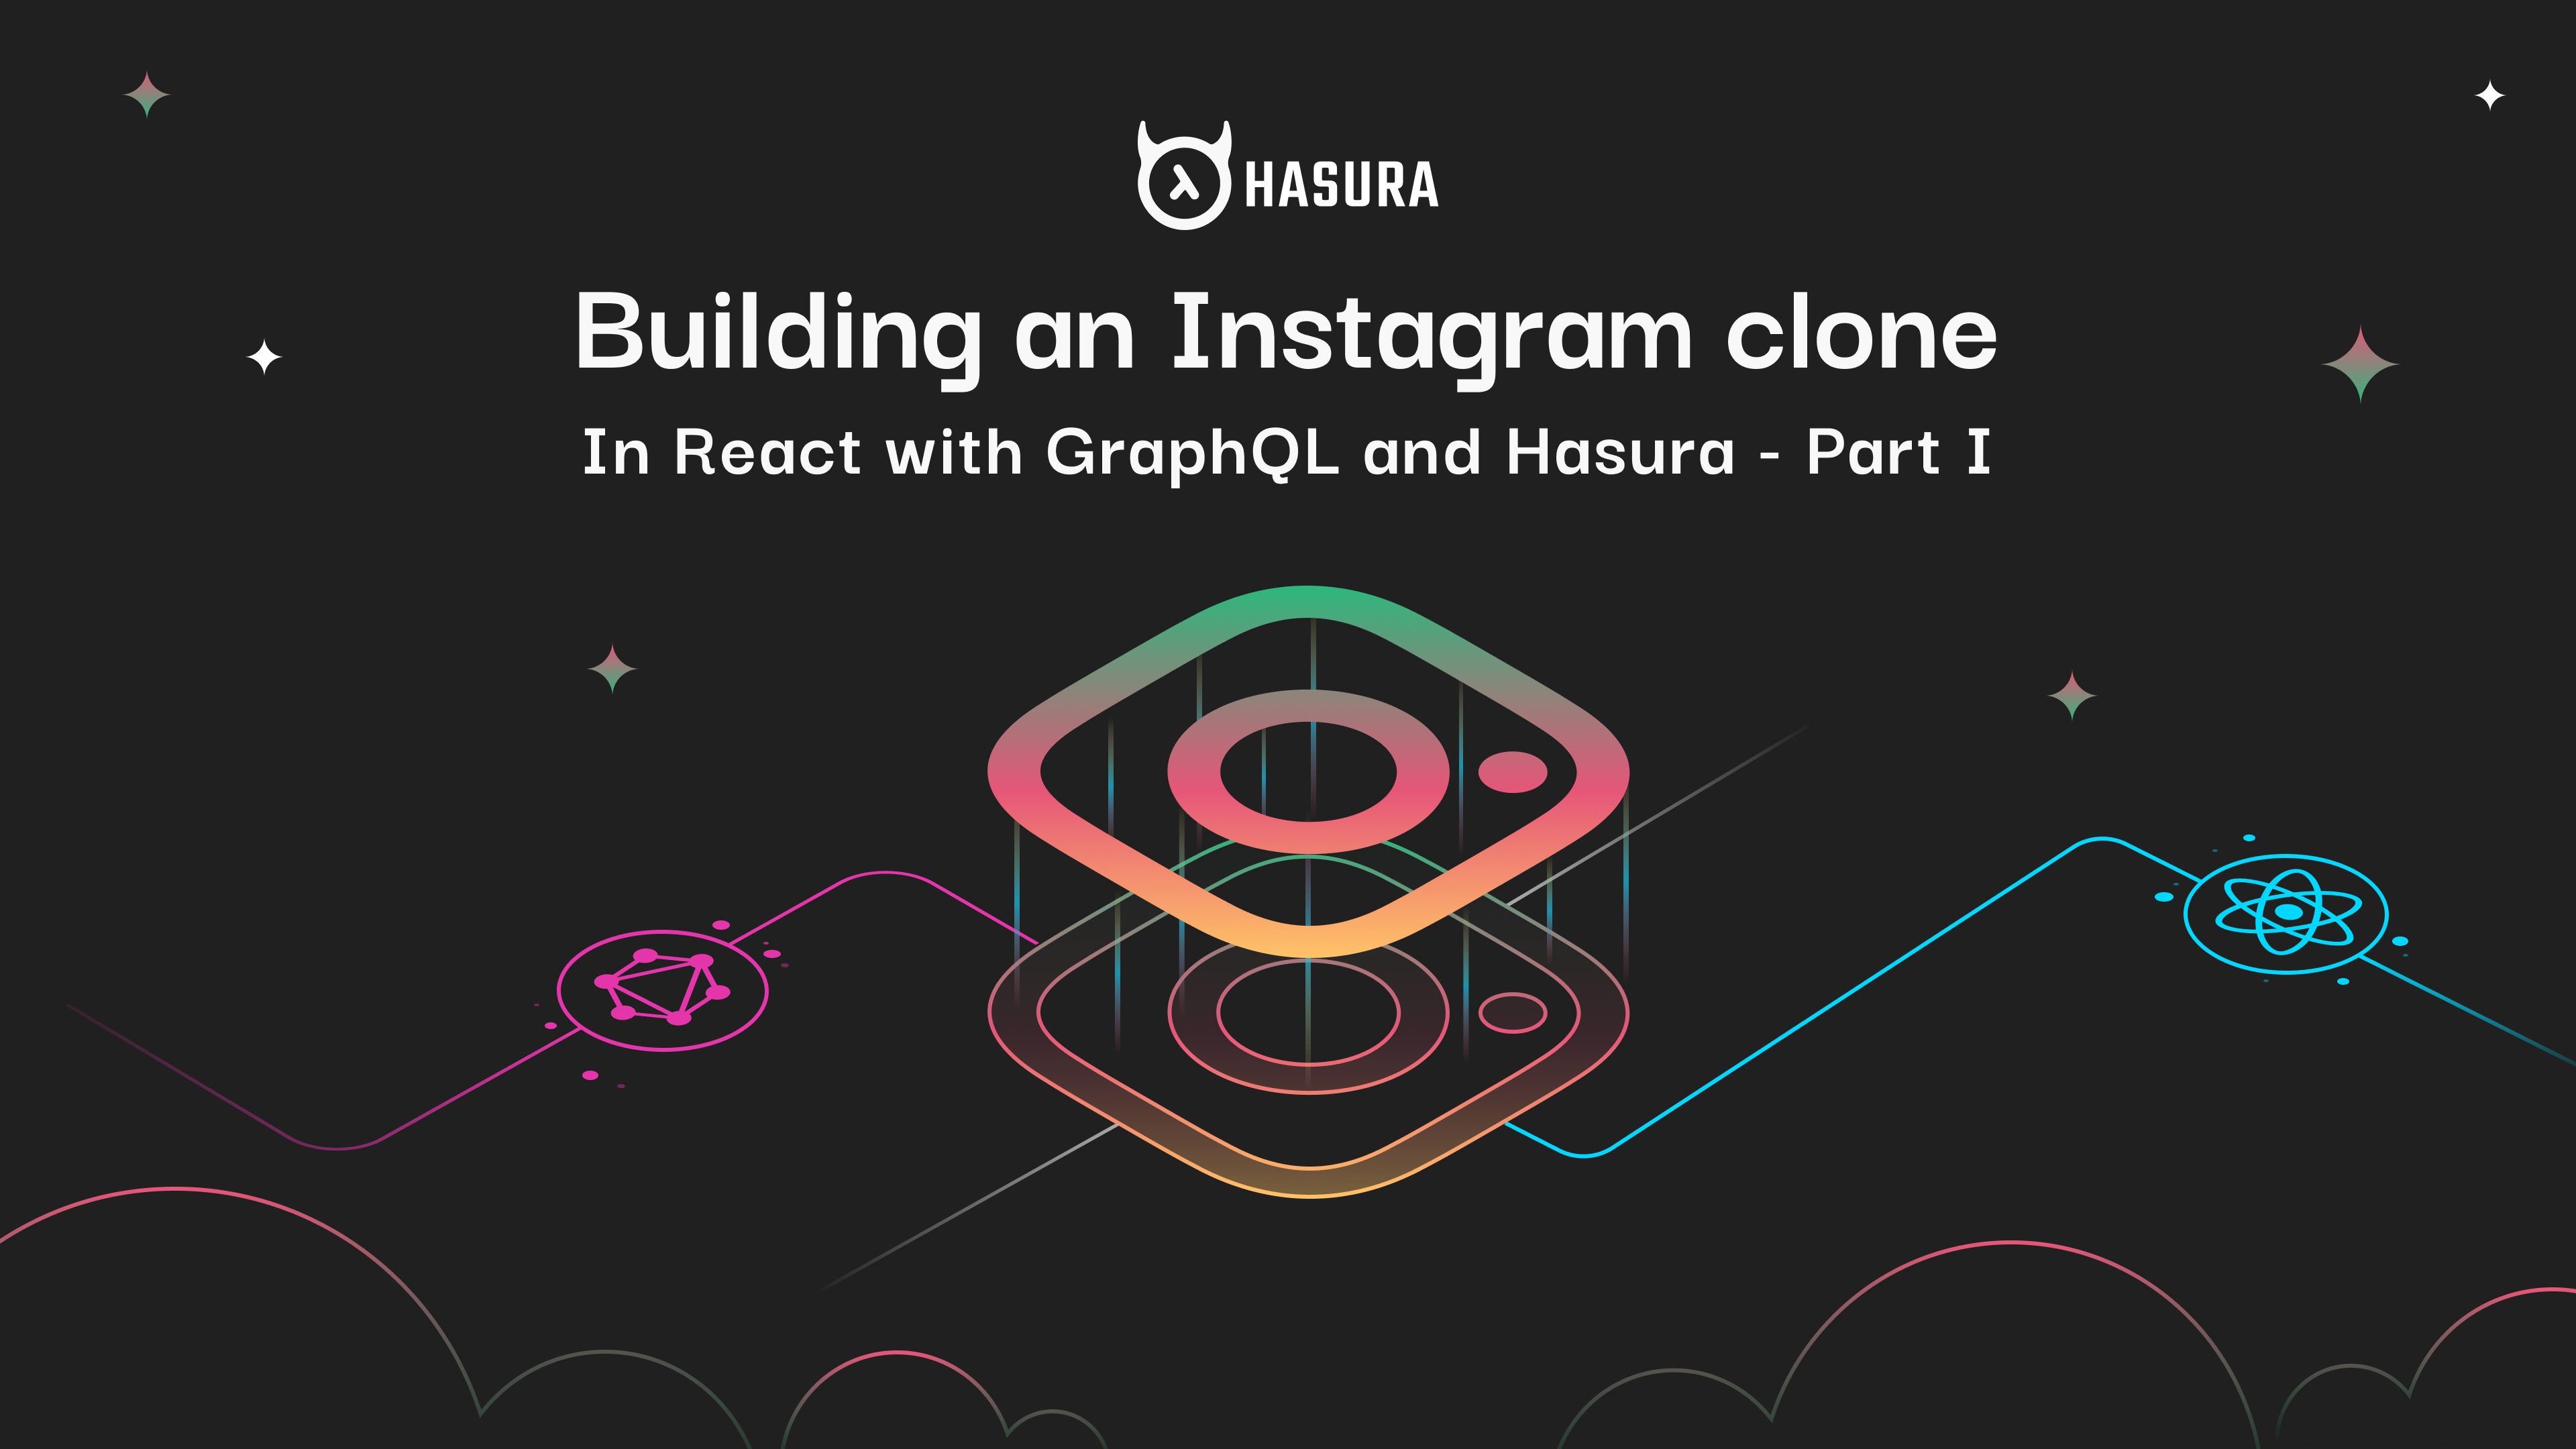 Building an Instagram clone in React with GraphQL and Hasura - Part I